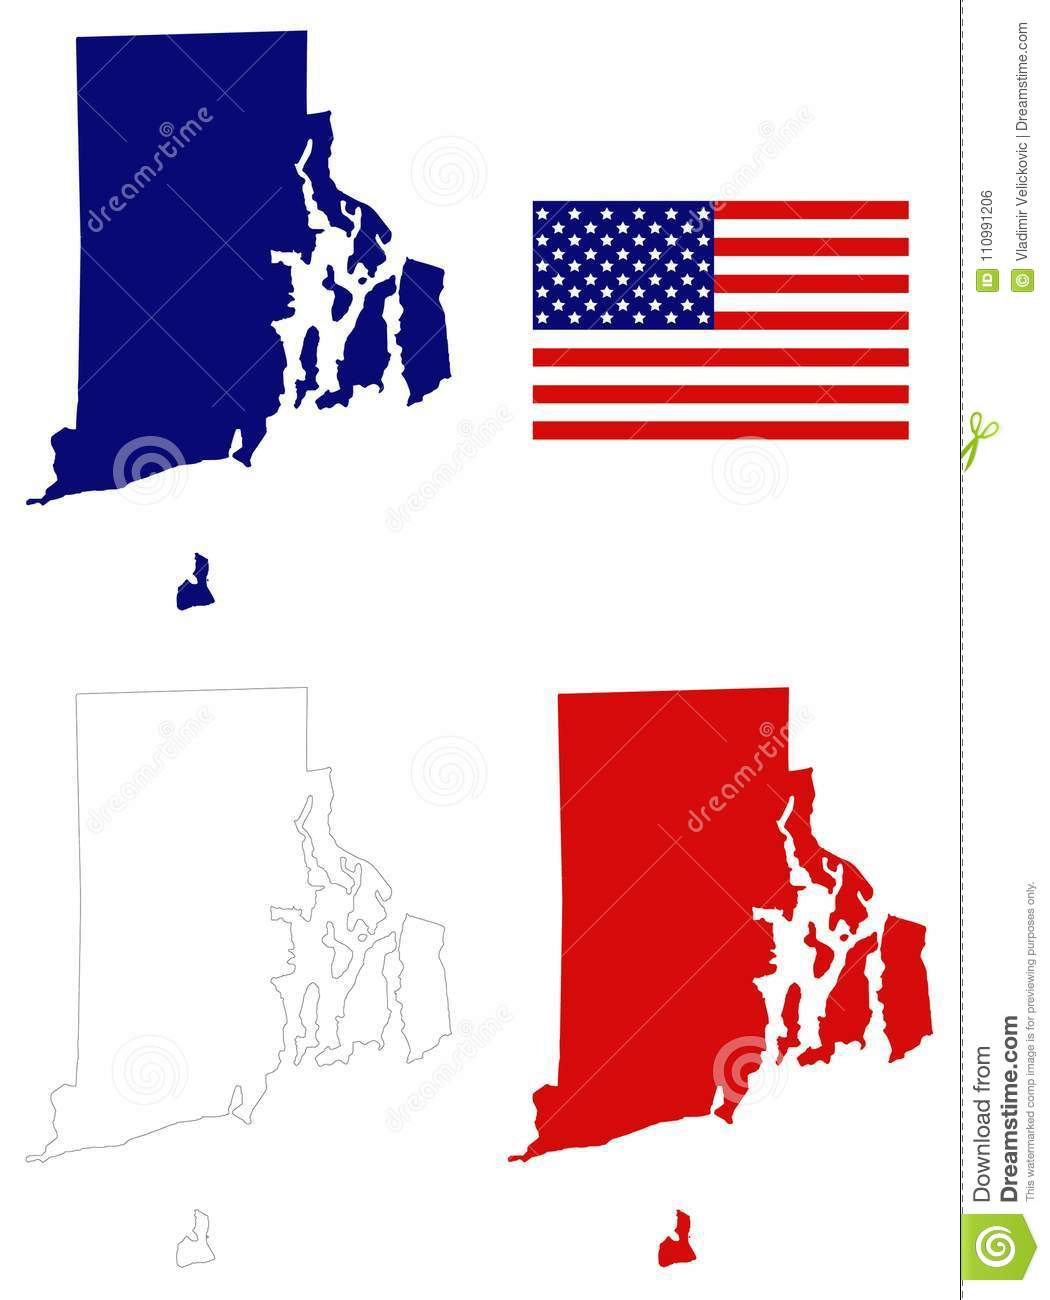 Rhode Island Map With USA Flag - State In The New England ...